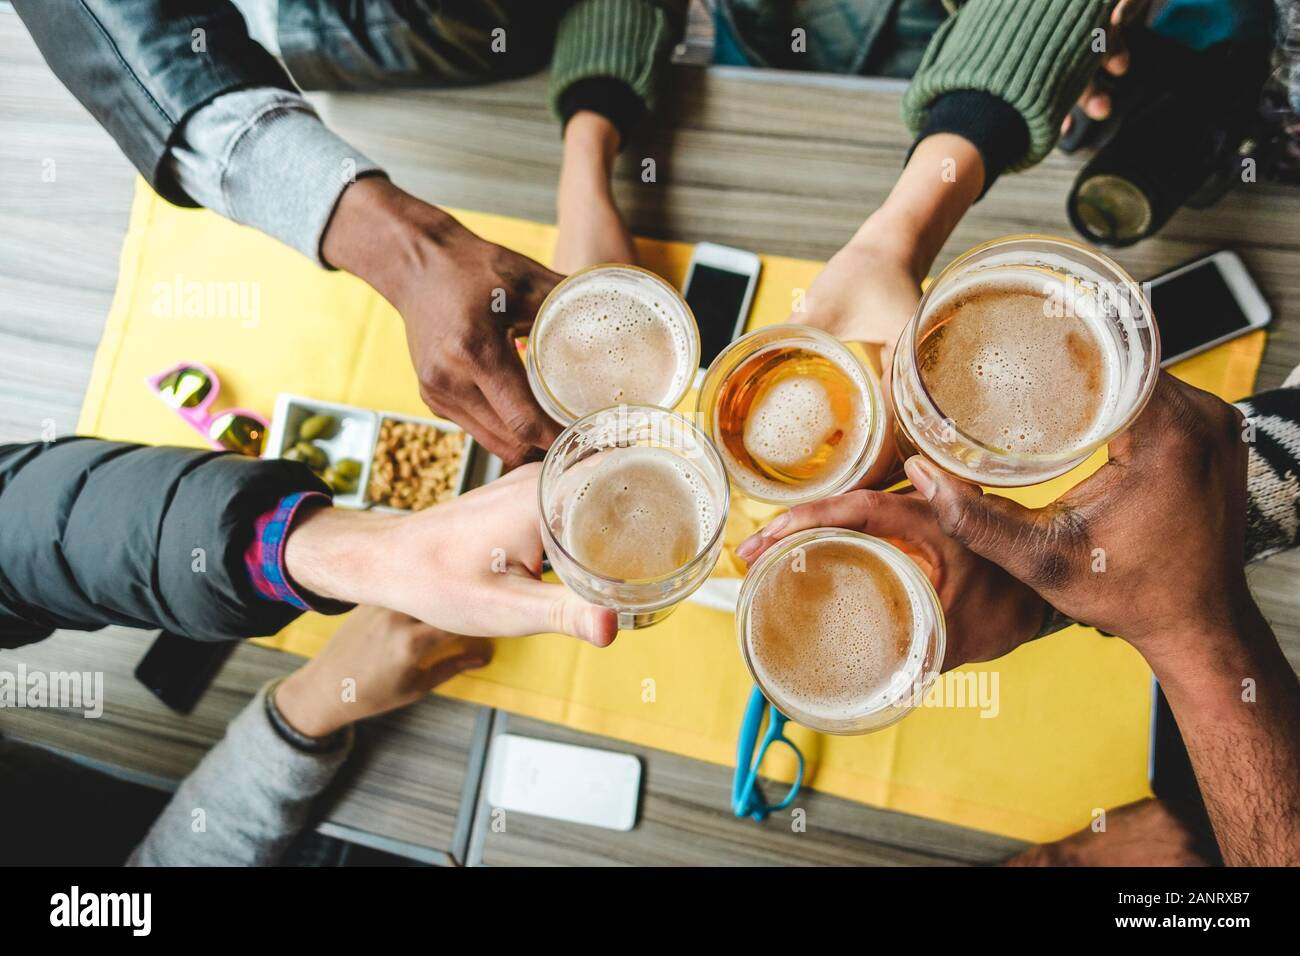 Group of friends enjoying a beer glasses in english pub restaurant - Young people cheering at vintage bar - Friendship, happy hour and party concept - Stock Photo